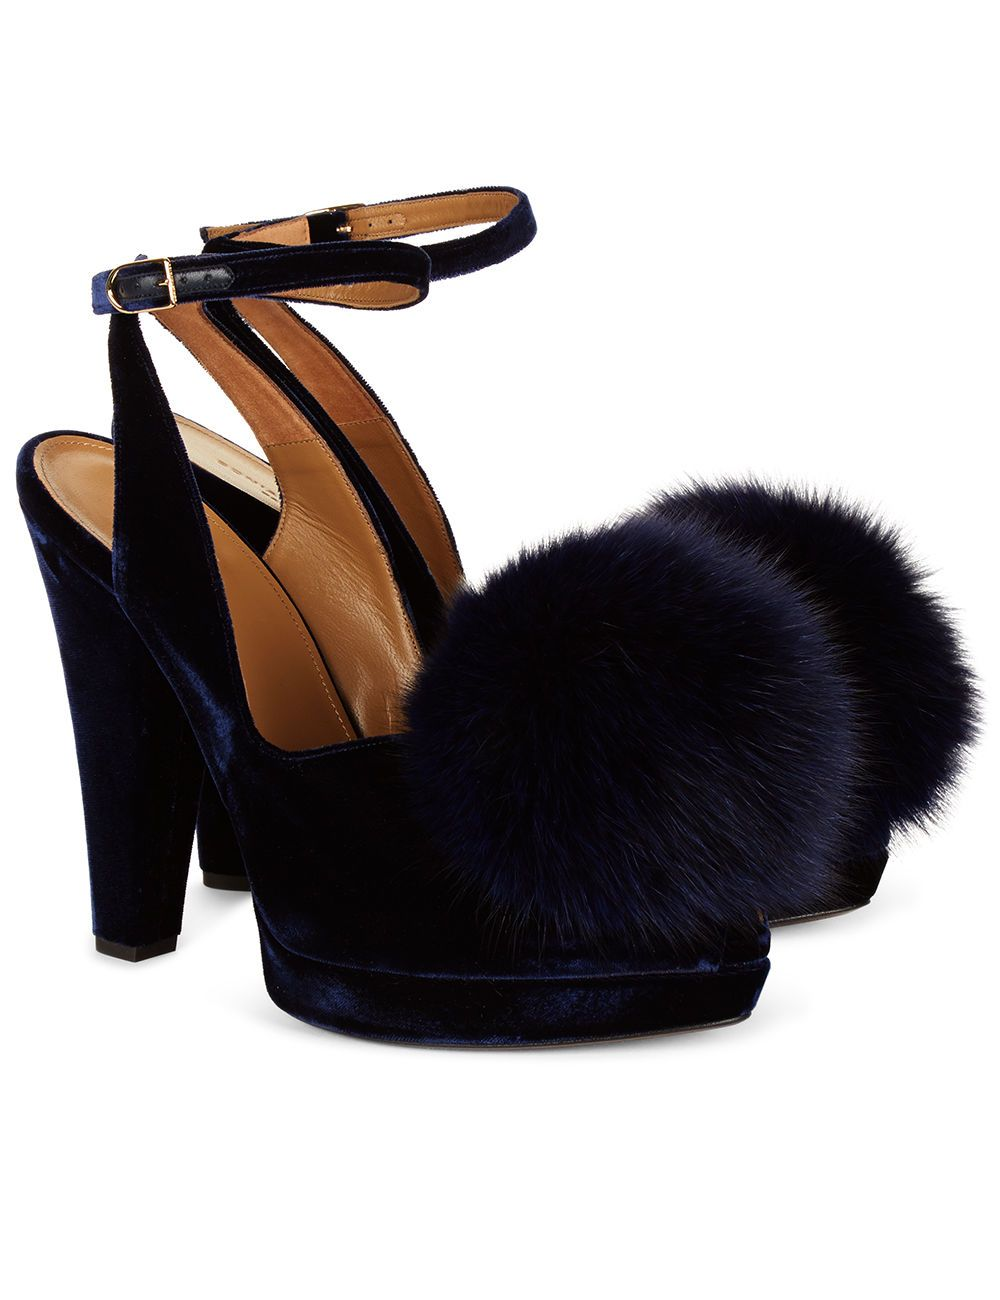 Cheap Newest Sonia by Sonia Rykiel Velvet Heels Discounts Cheap Price With Credit Card Cheap Price Affordable Footlocker Finishline Cheap Price rPVFUF3